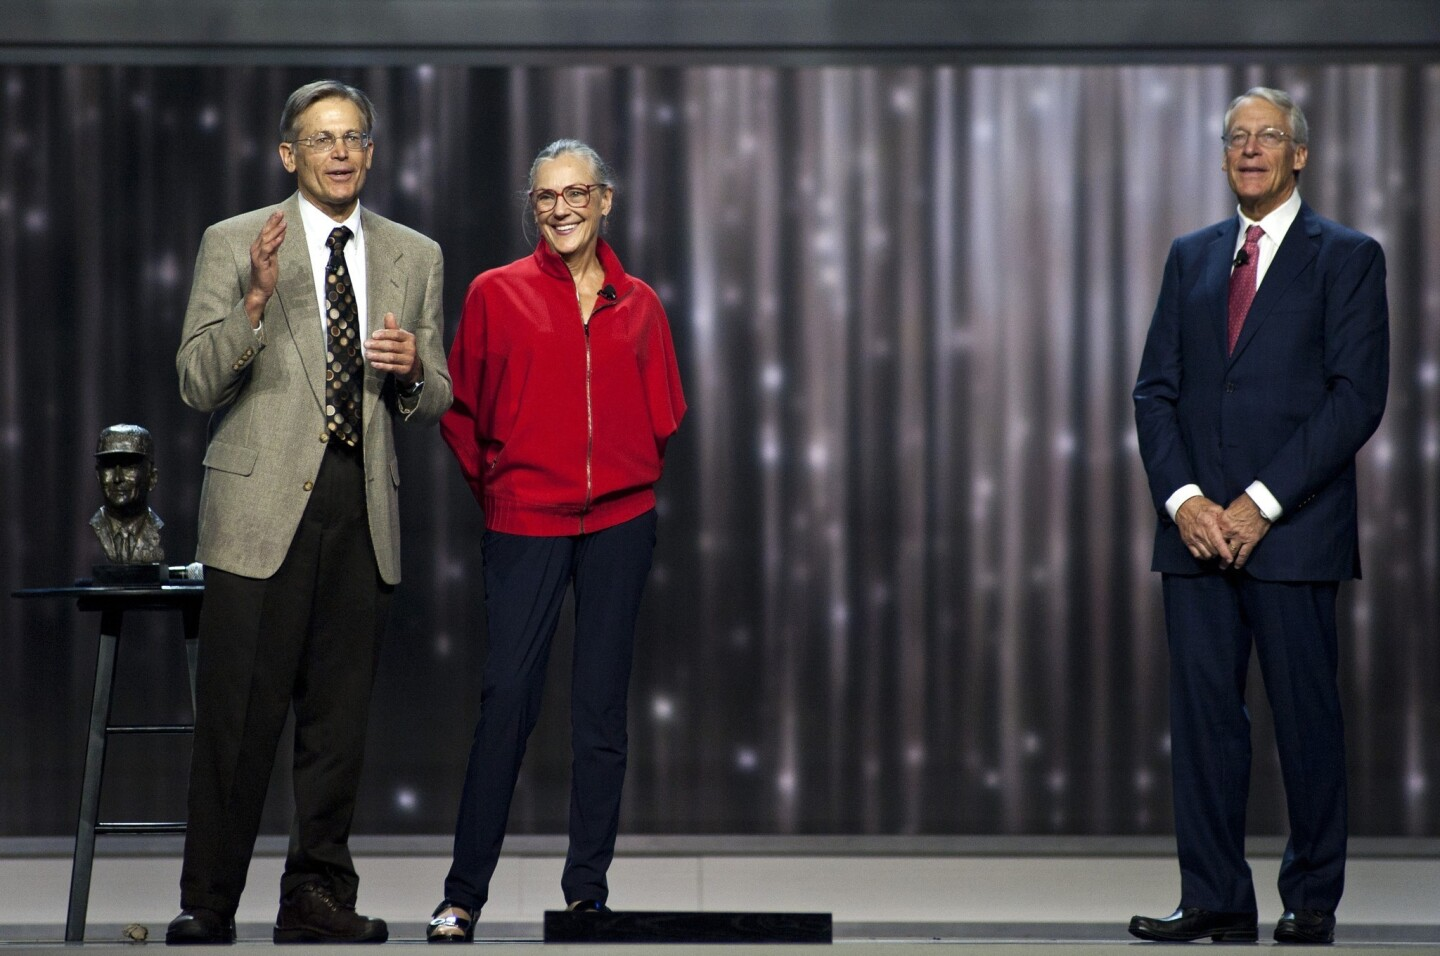 No. 10: Jim Walton, left, the youngest son of Wal-Mart founder Sam Walton, sharing the stage with siblings Alice Walton and Rob Walton, had a net worth of $34.7 billion.